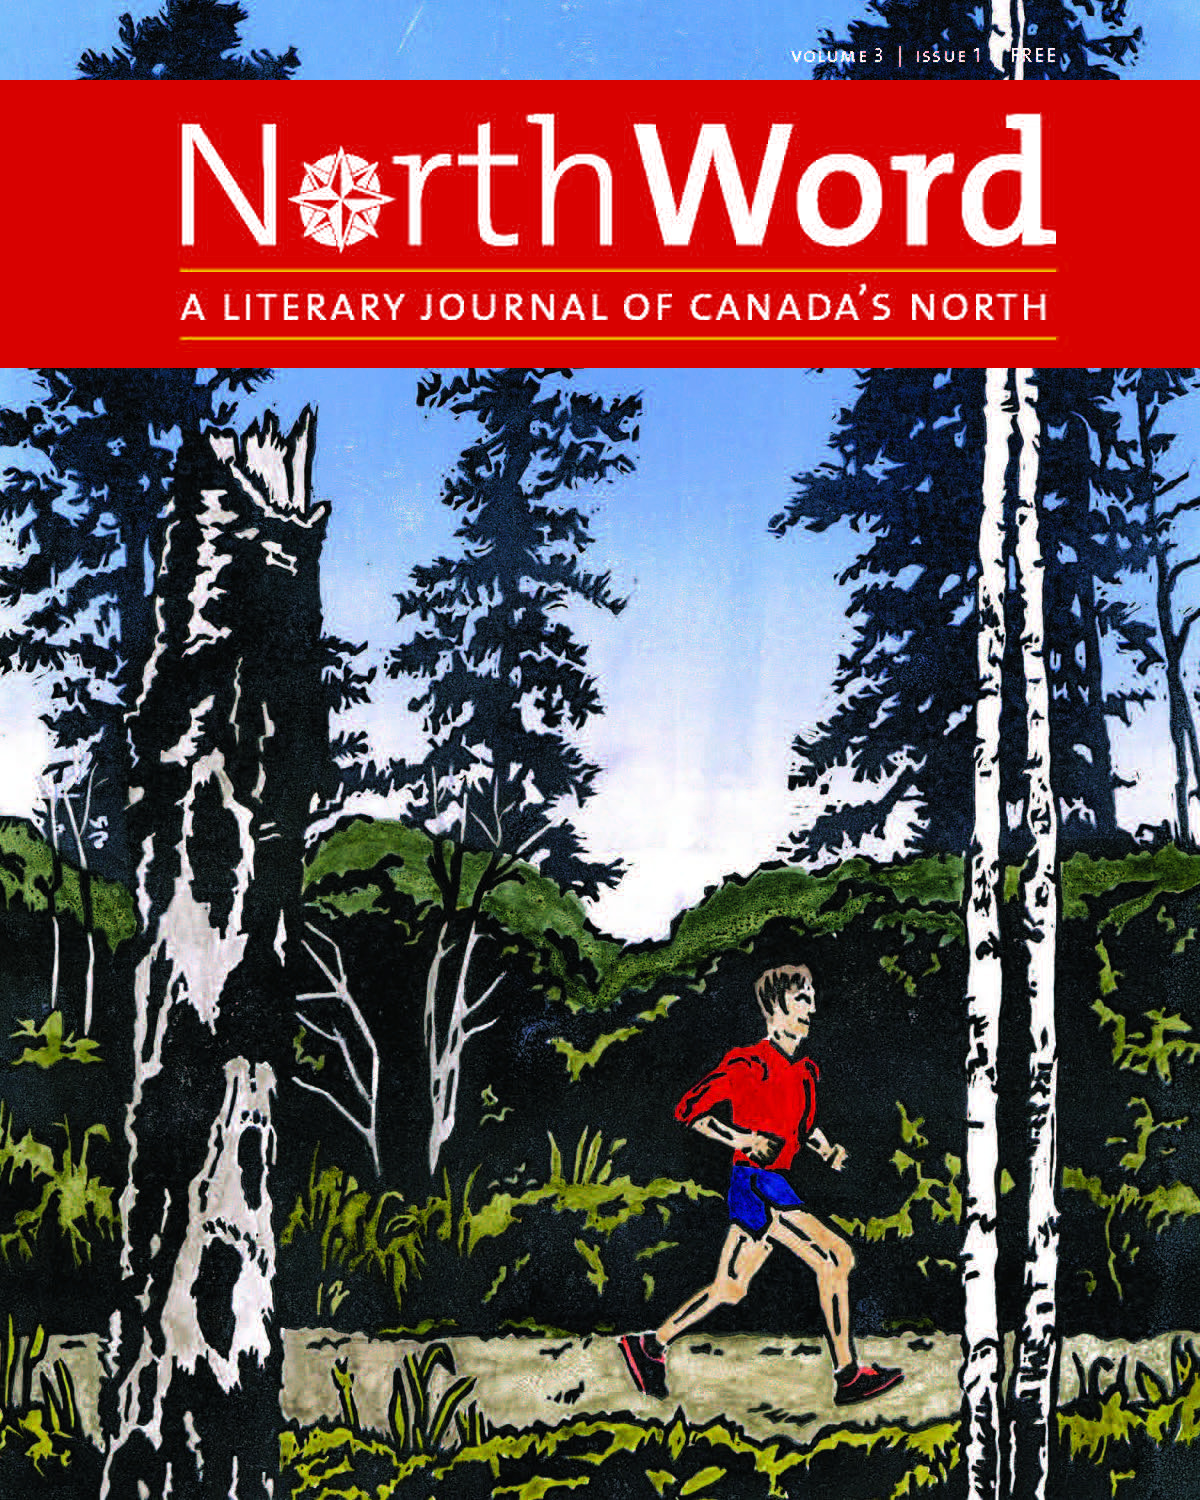 NorthWord Vol 03 No 01